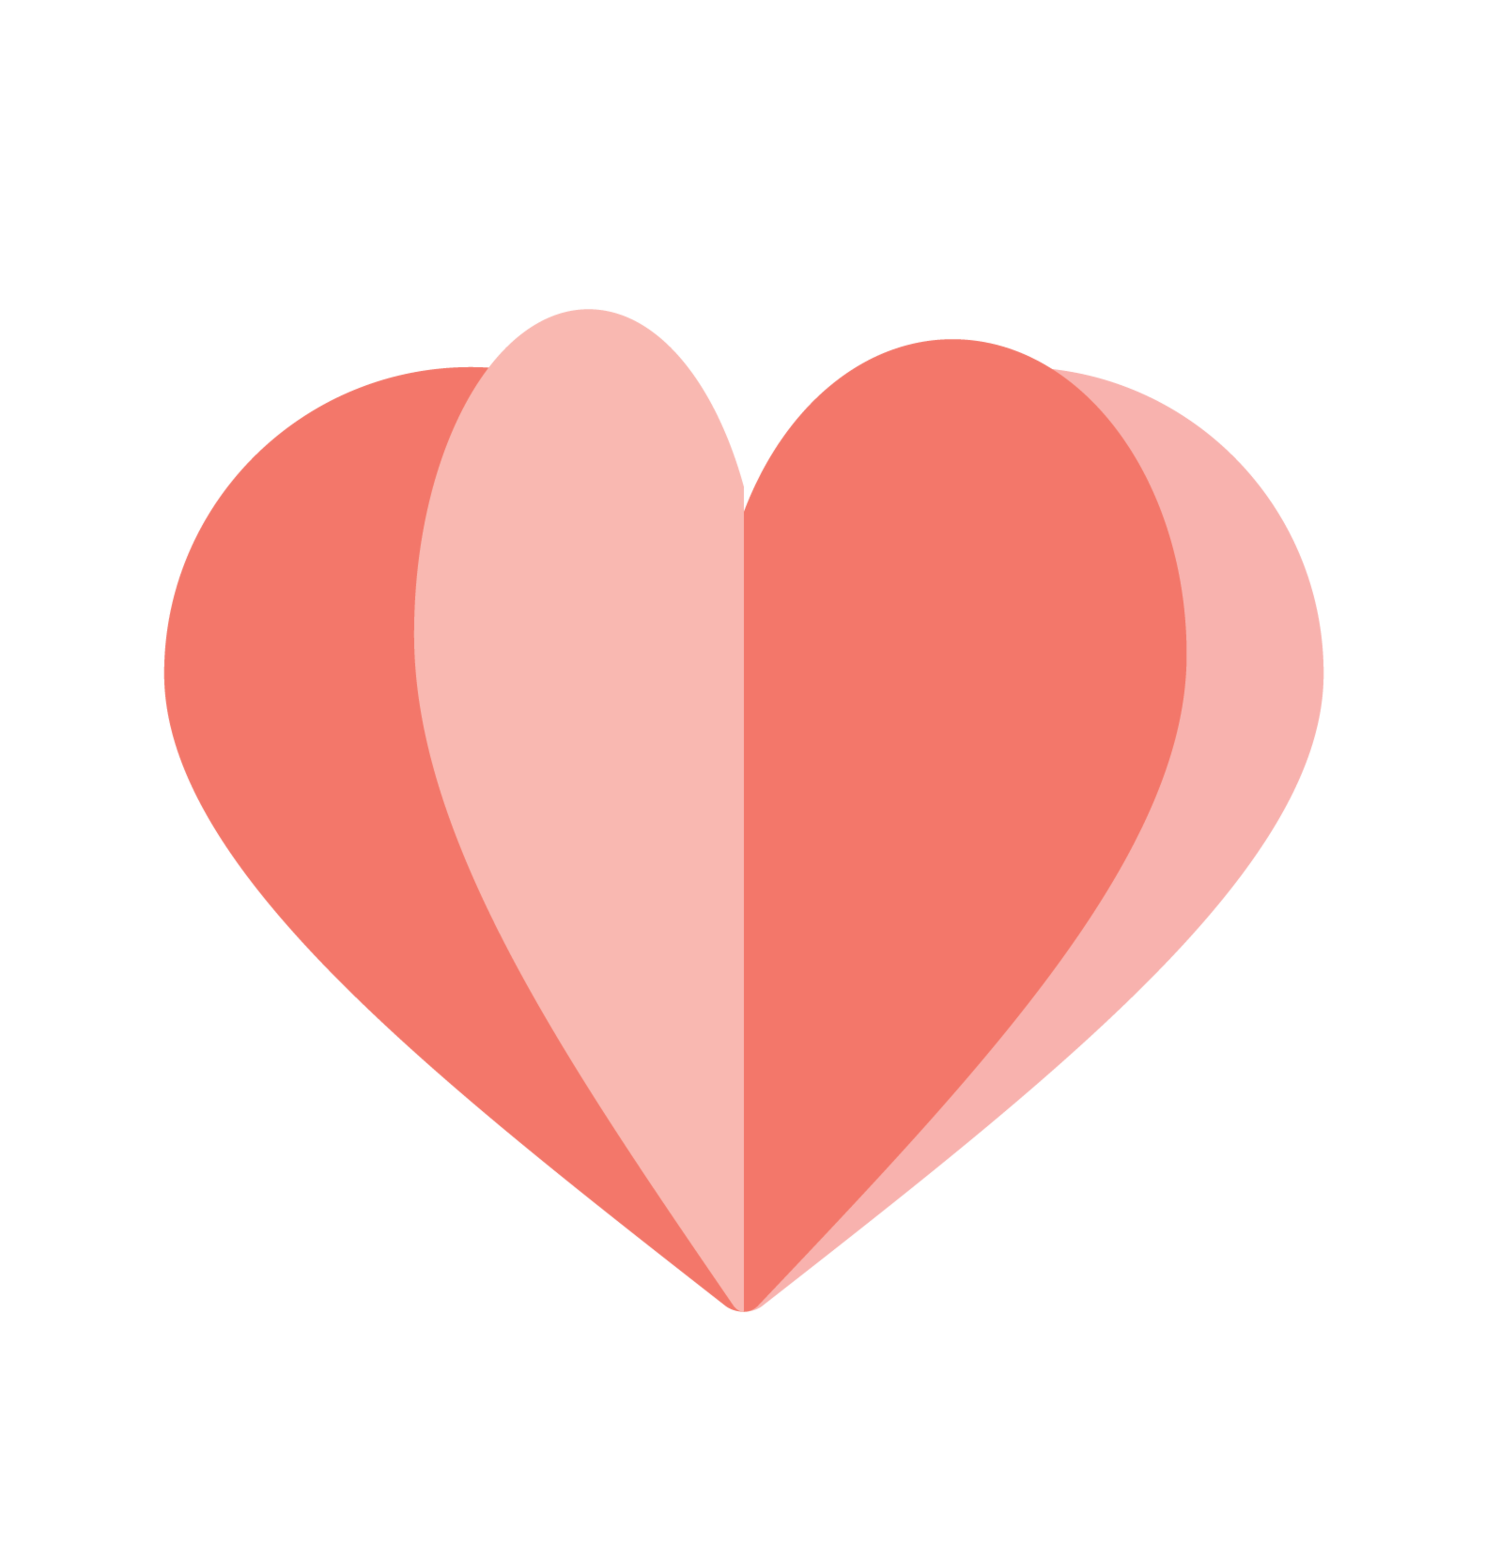 Clipart hearts calligraphy. Adoration